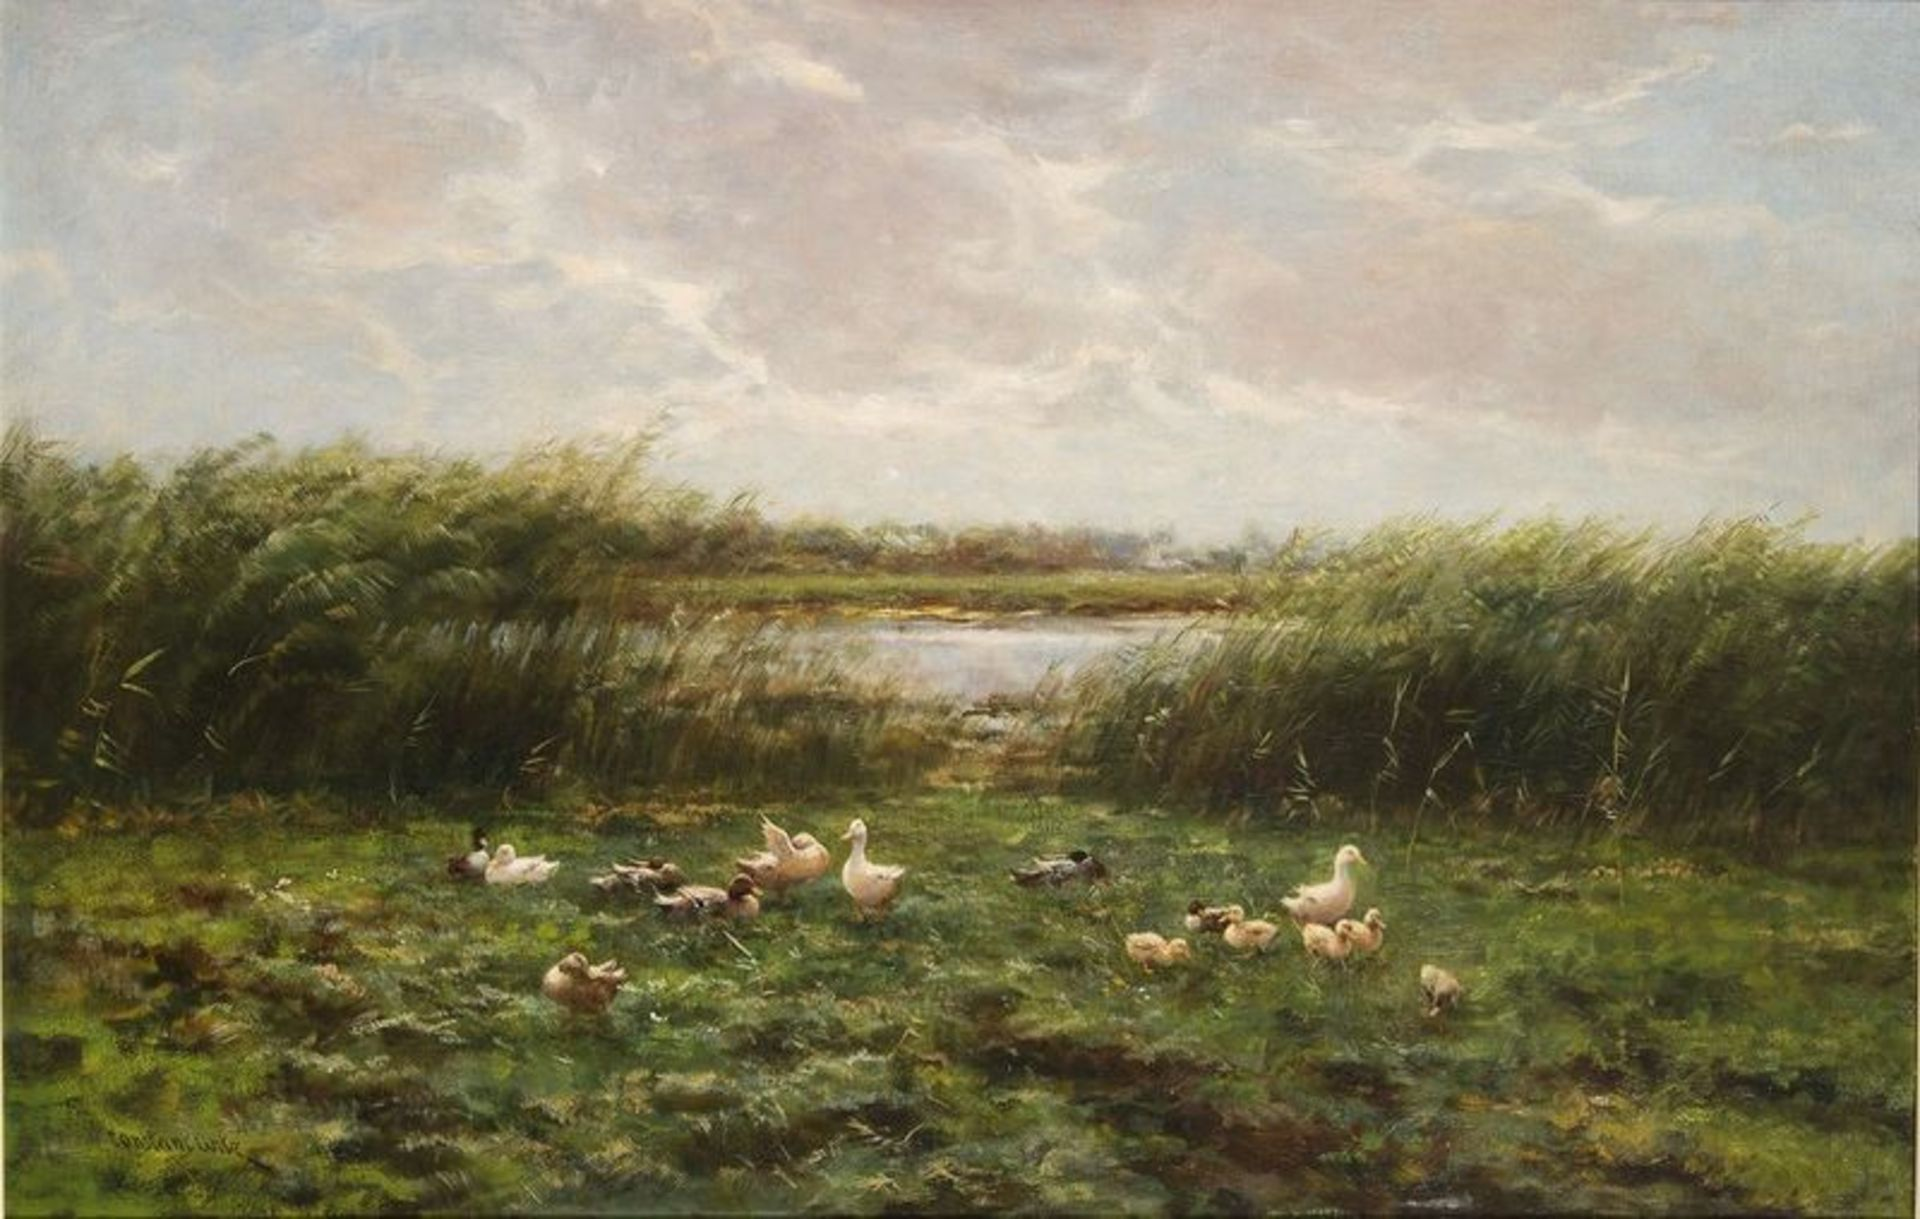 Los 517 - CONSTANT DAVID LUDOVIC ARTZ (1870-1951) Ducks and Ducklings at the Waters Edge - [...]